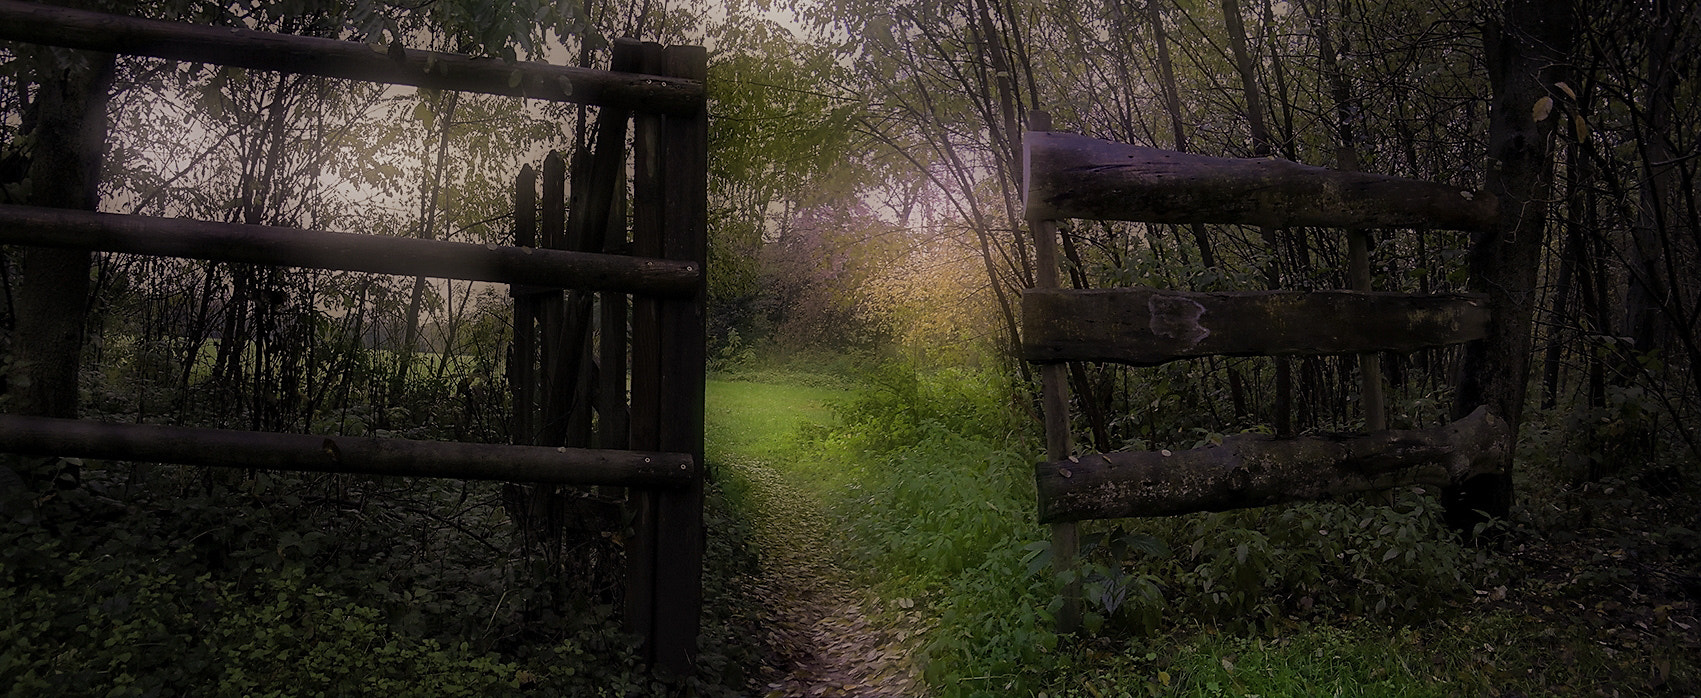 Photograph Trail in the park by Antonio Romano on 500px